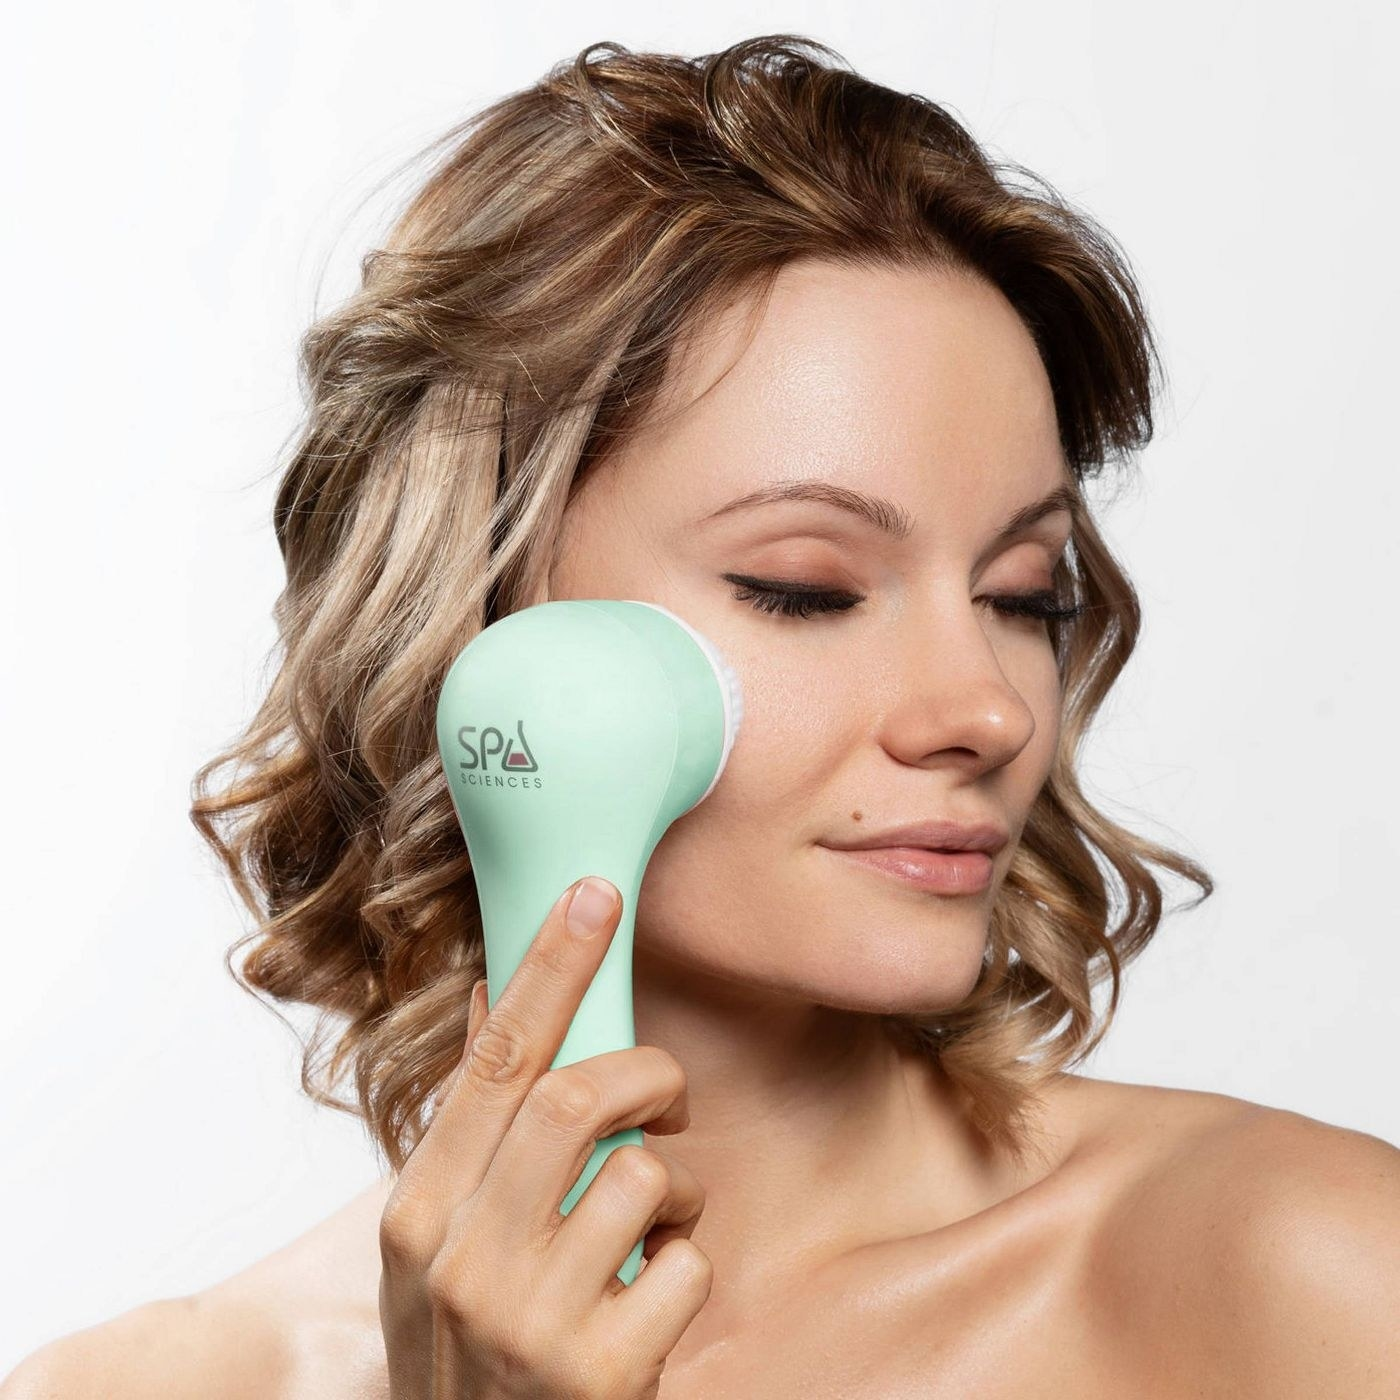 The cleansing brush being used on a model's skin